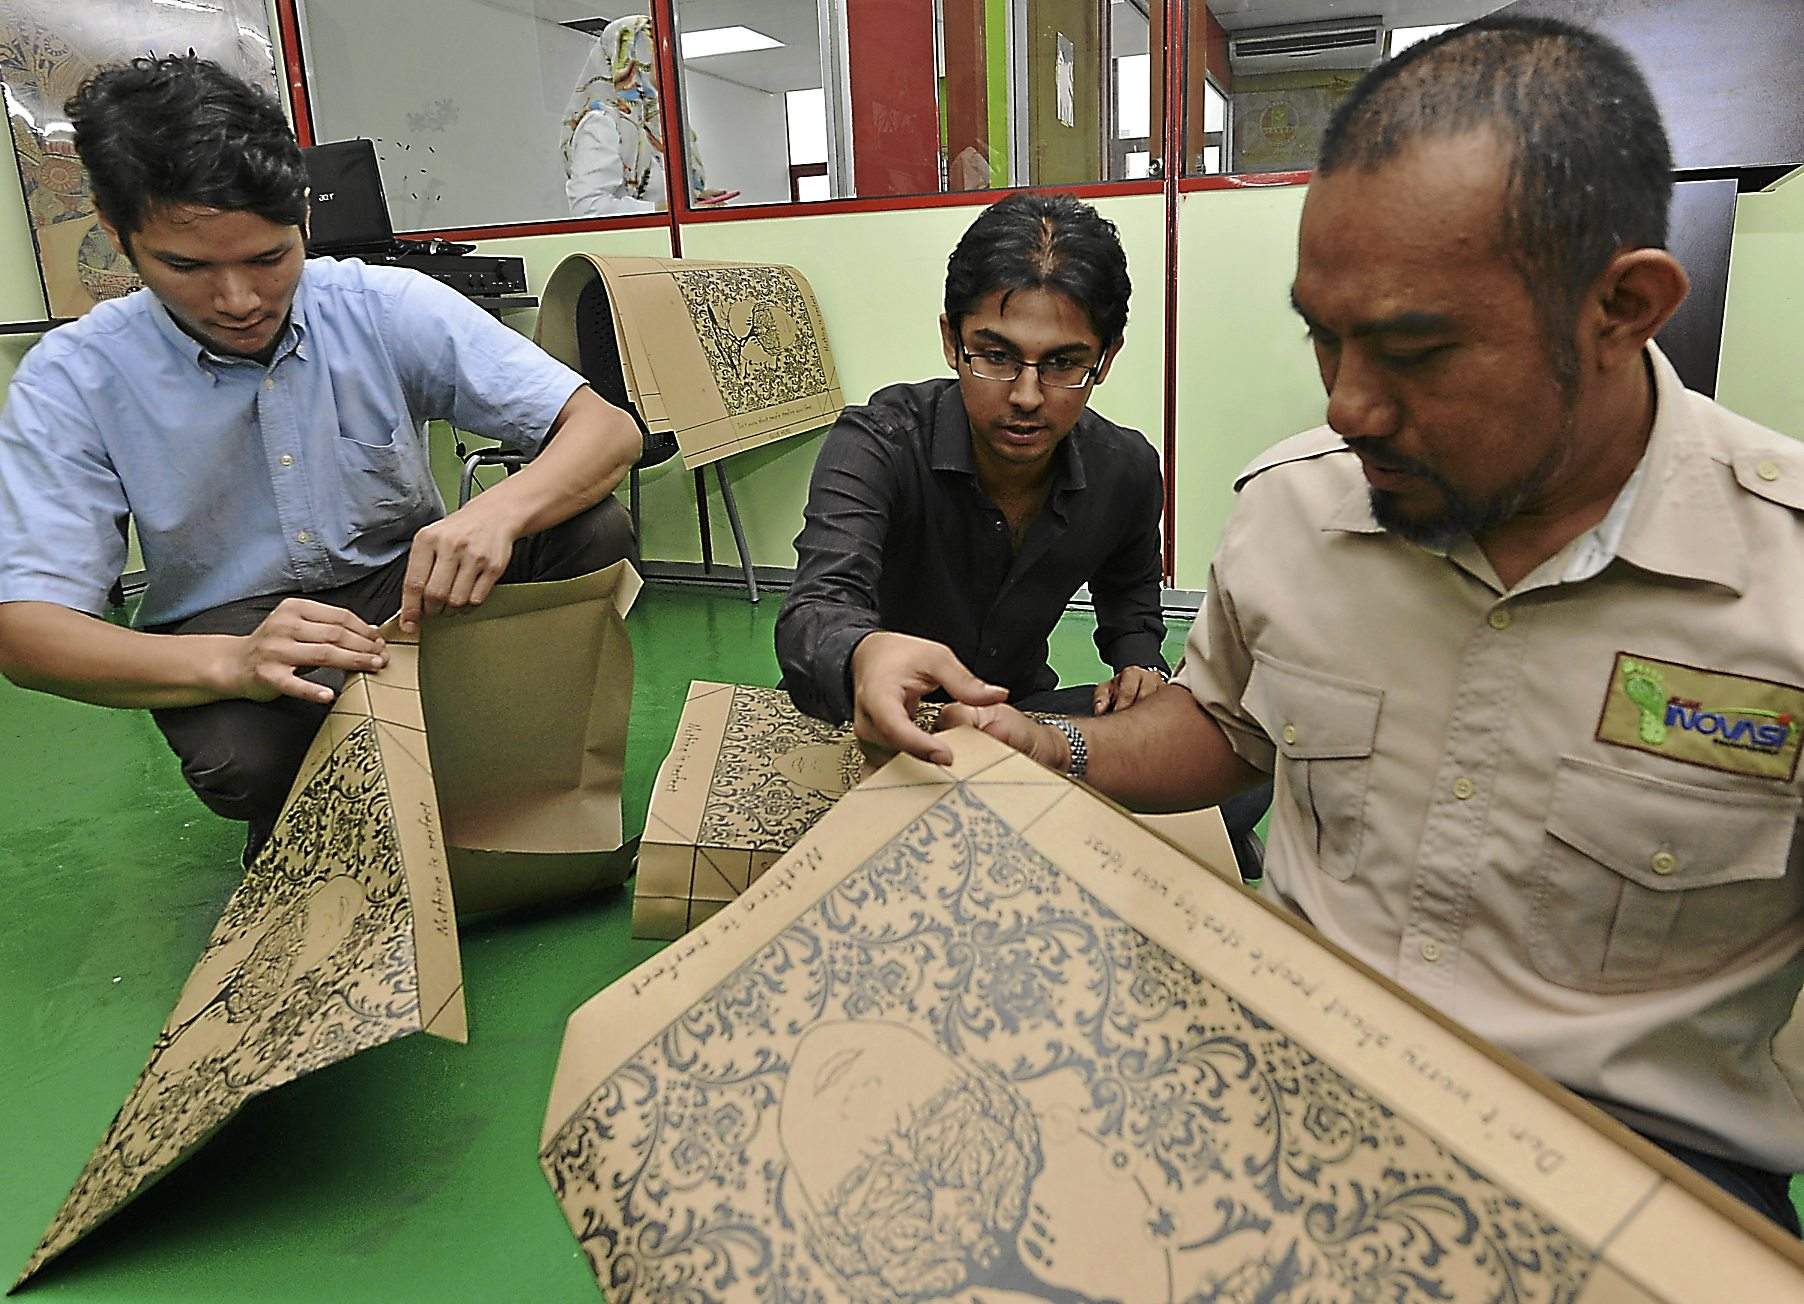 Biji-Biji Co-founder Azam Hisham (left) and Rashvin Pal Singh (middle ) showing YIM chief operating officer Muhammad Aziph Datuk Mustapha how to create a paper bag during the Donate Your Idea Workshop at  Skills Technical Innovation College, Kuala Lumpur on July 8.